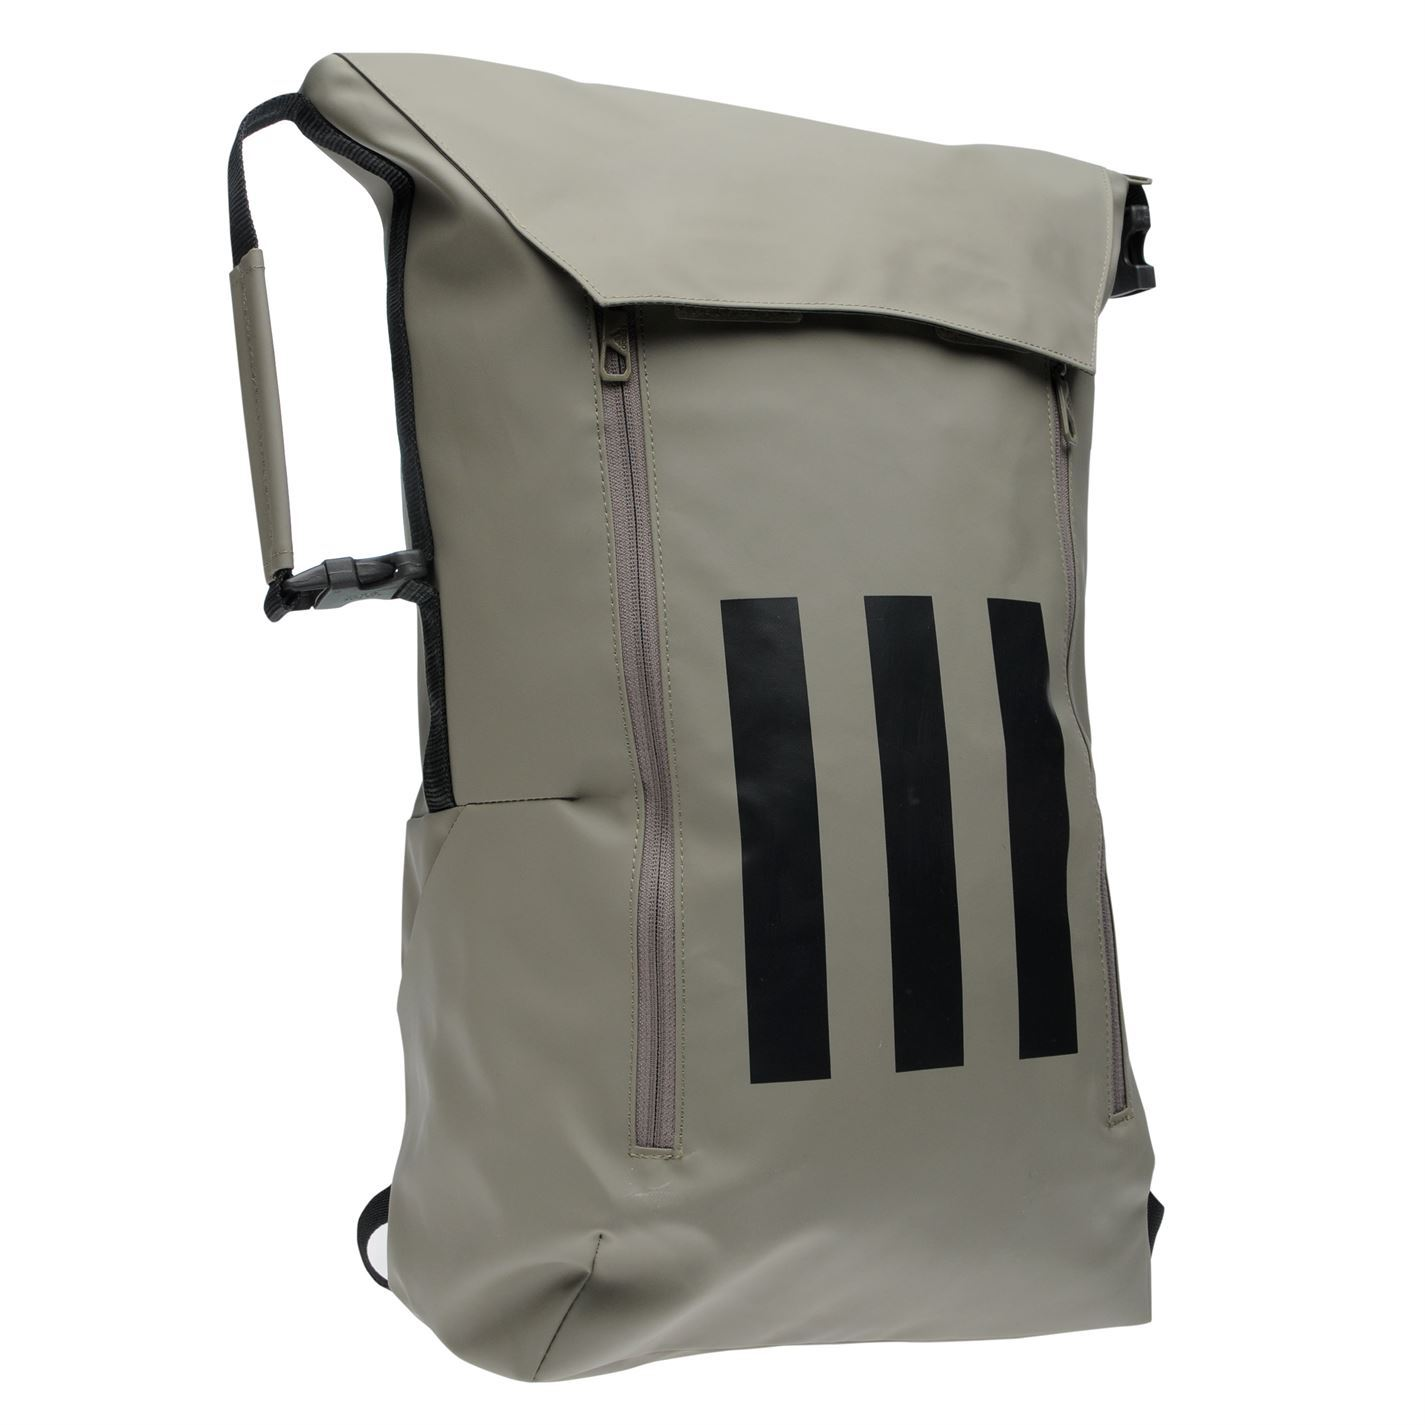 a33e0cc5d078 ... adidas Athletic ID Backpack Trace Cargo Kahki Sports Gym Bag Rucksack  Carryall ...